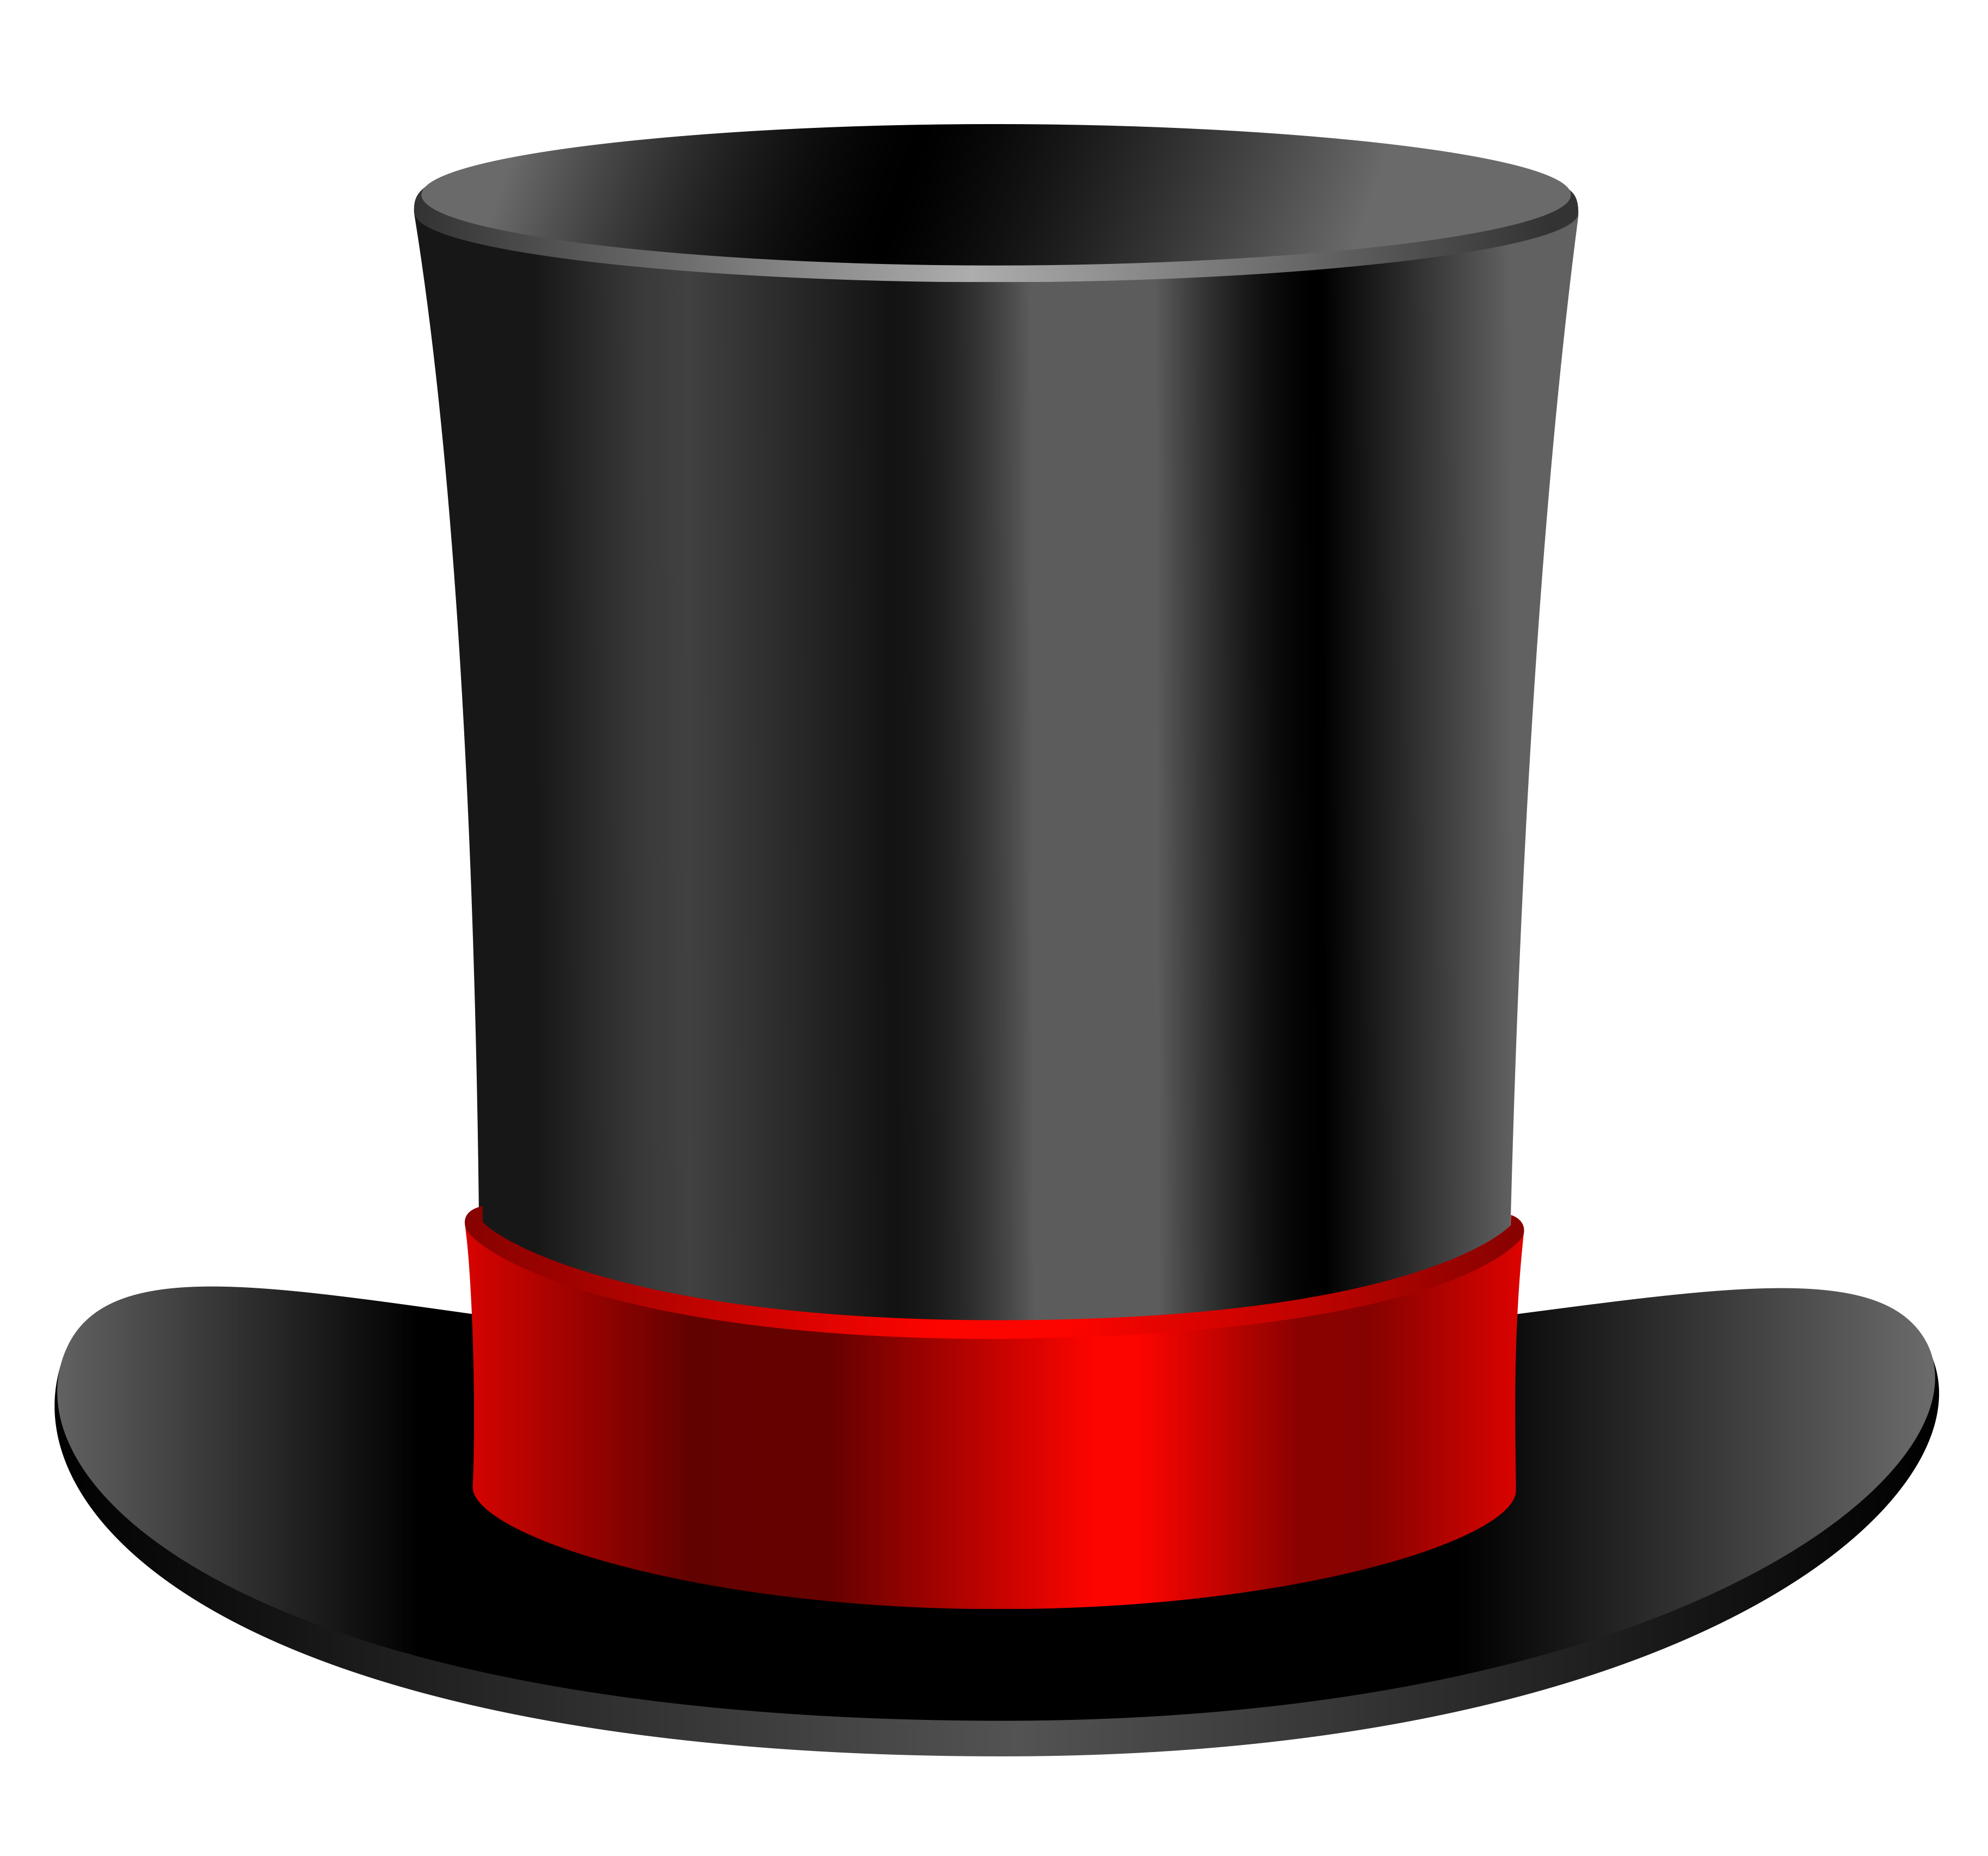 Stovepipe hat clipart #8